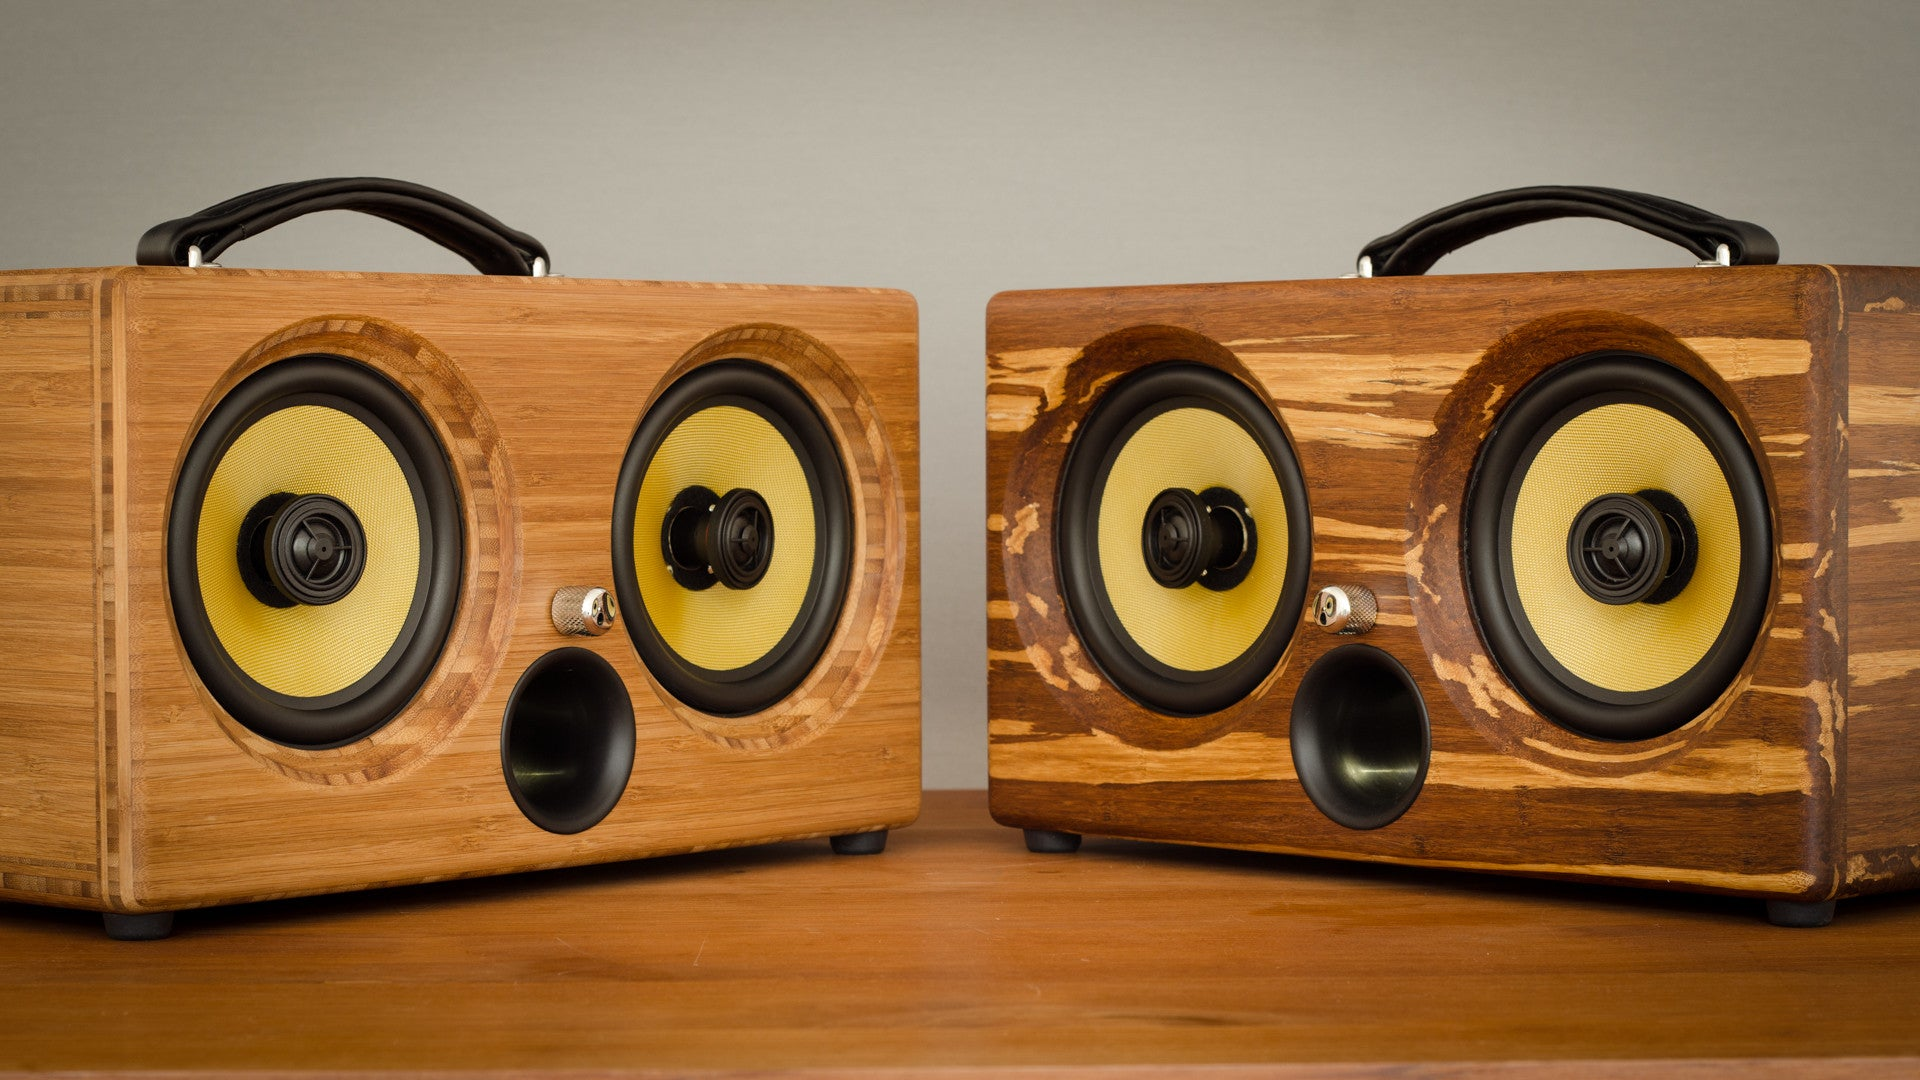 Best airplay speaker 2015 review wifi bluetooth speakers aptx new latest ultimate coolest speakers available wood solid woods wooden vintage hipster audiophile tk2050 sta508 sta516 tripath amplifier guitar amplifier HD sound music high resolution boombox